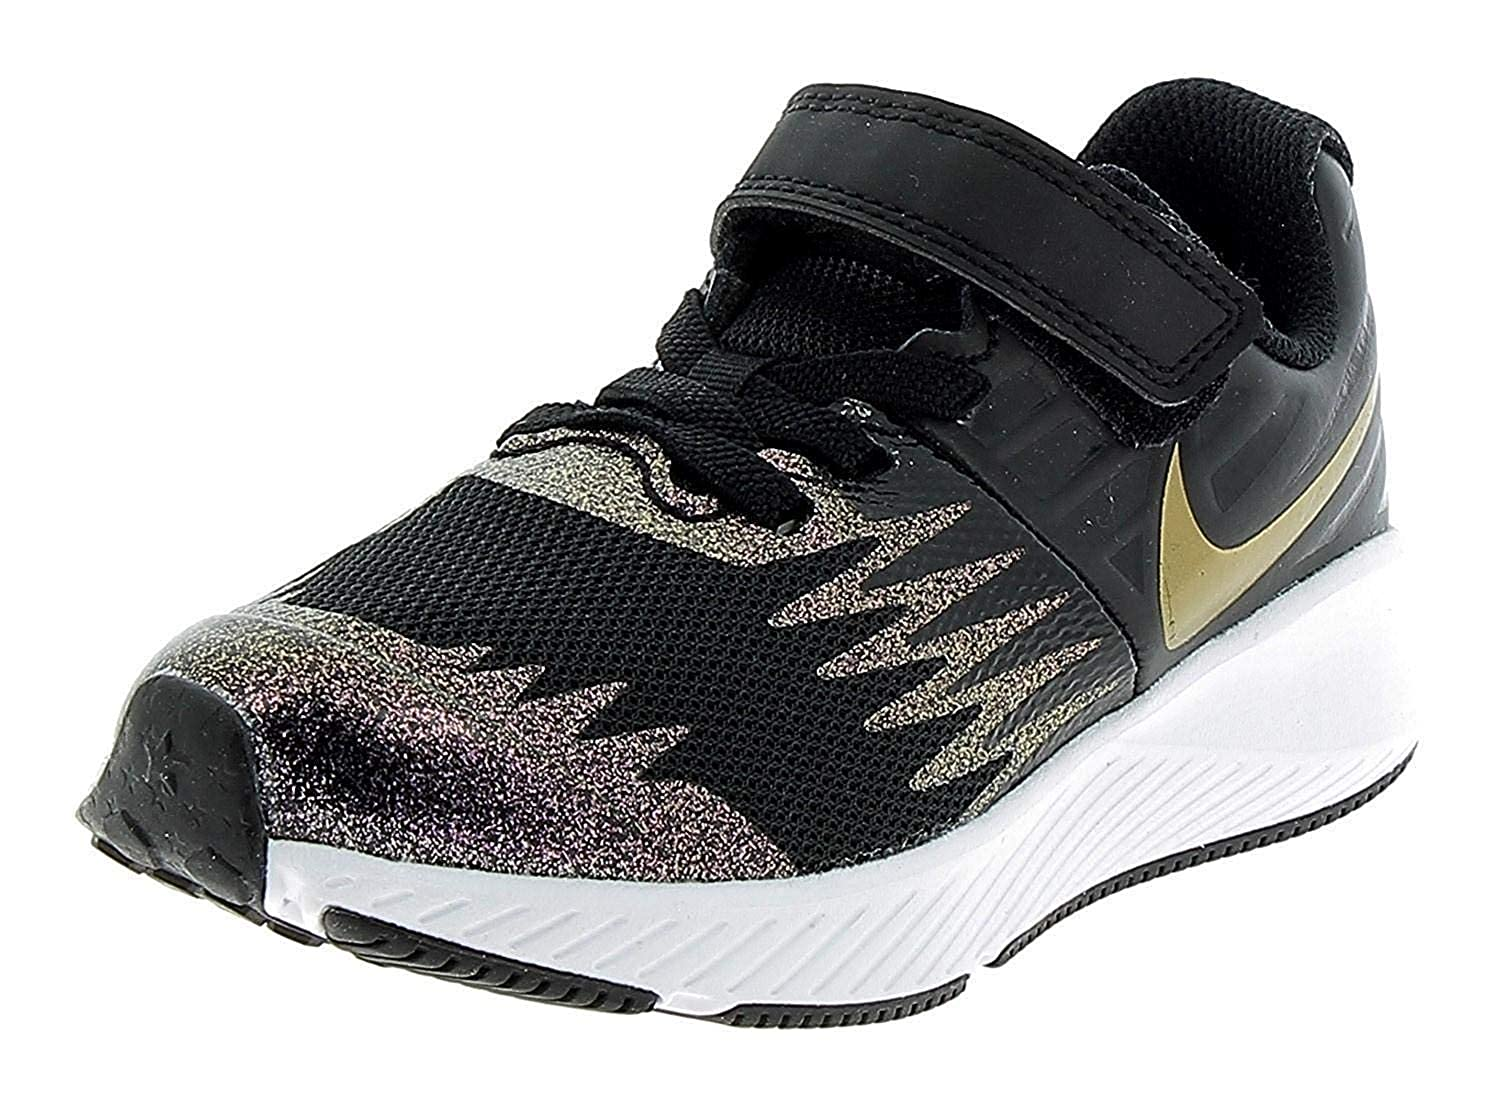 Nike Girls Star Runner Sh (PSV) Fitness Shoes